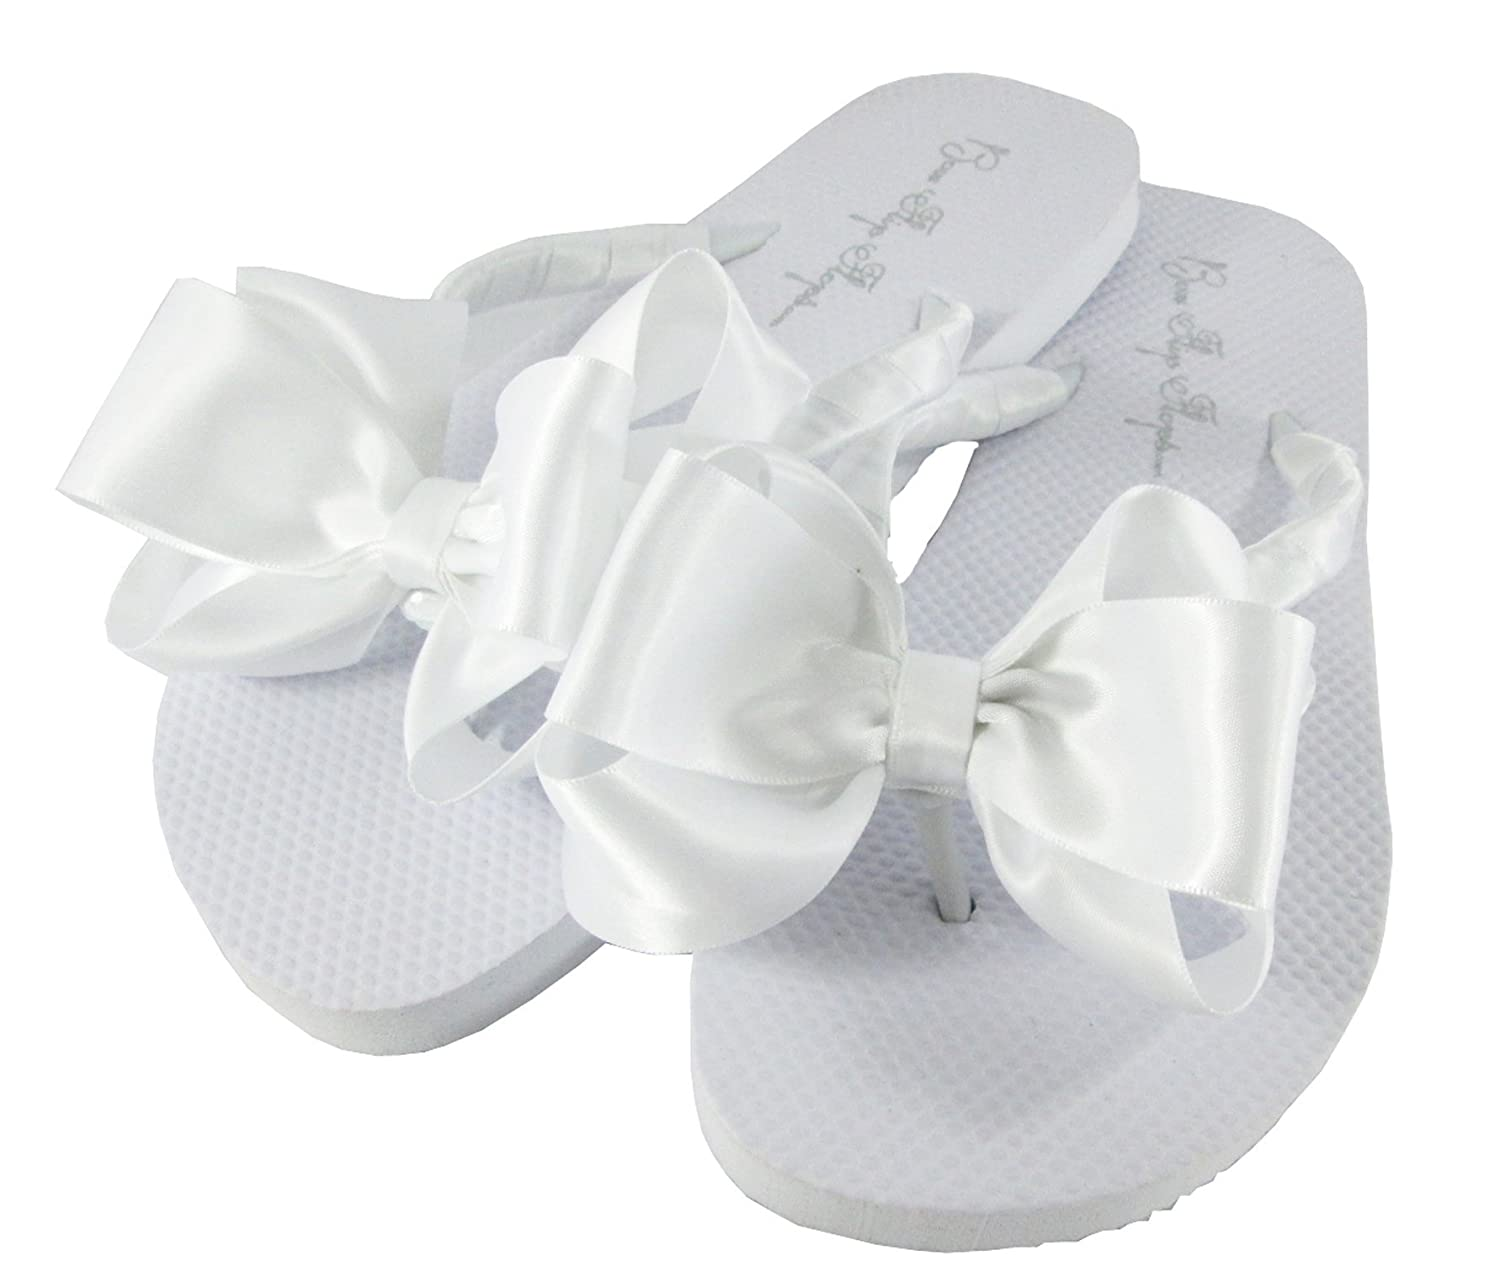 d7f3437b382 Amazon.com  Customized Colors Bridal Flip Flops Wedding White Bride Bow  Flat Satin Flip Flops  Handmade